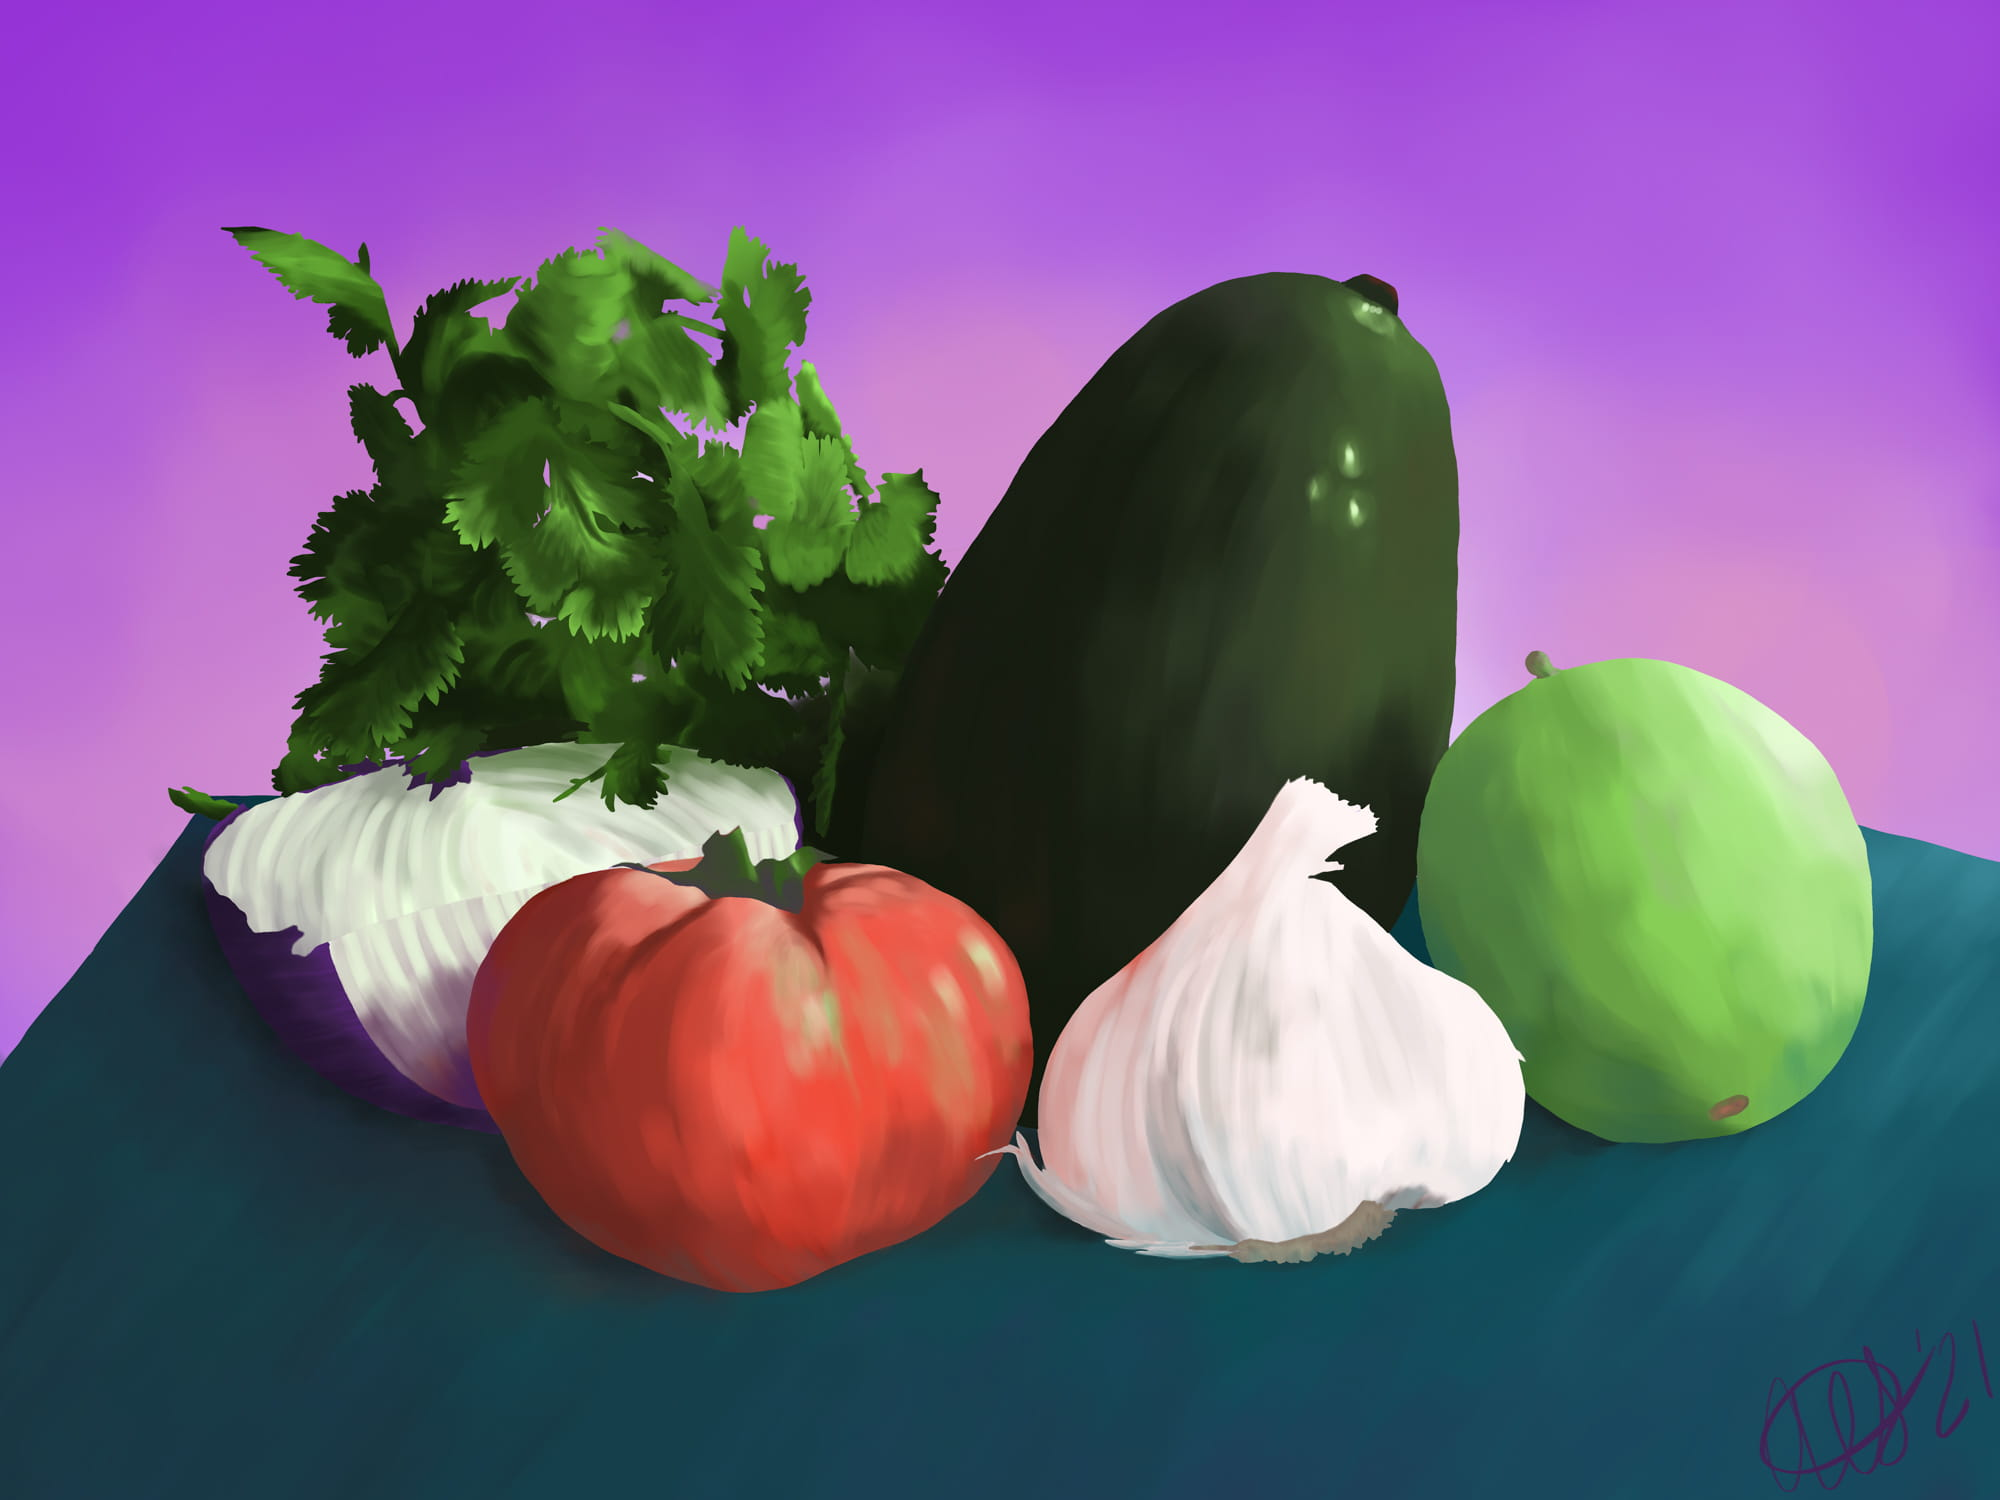 Still life of vegetables by Andrea Savage